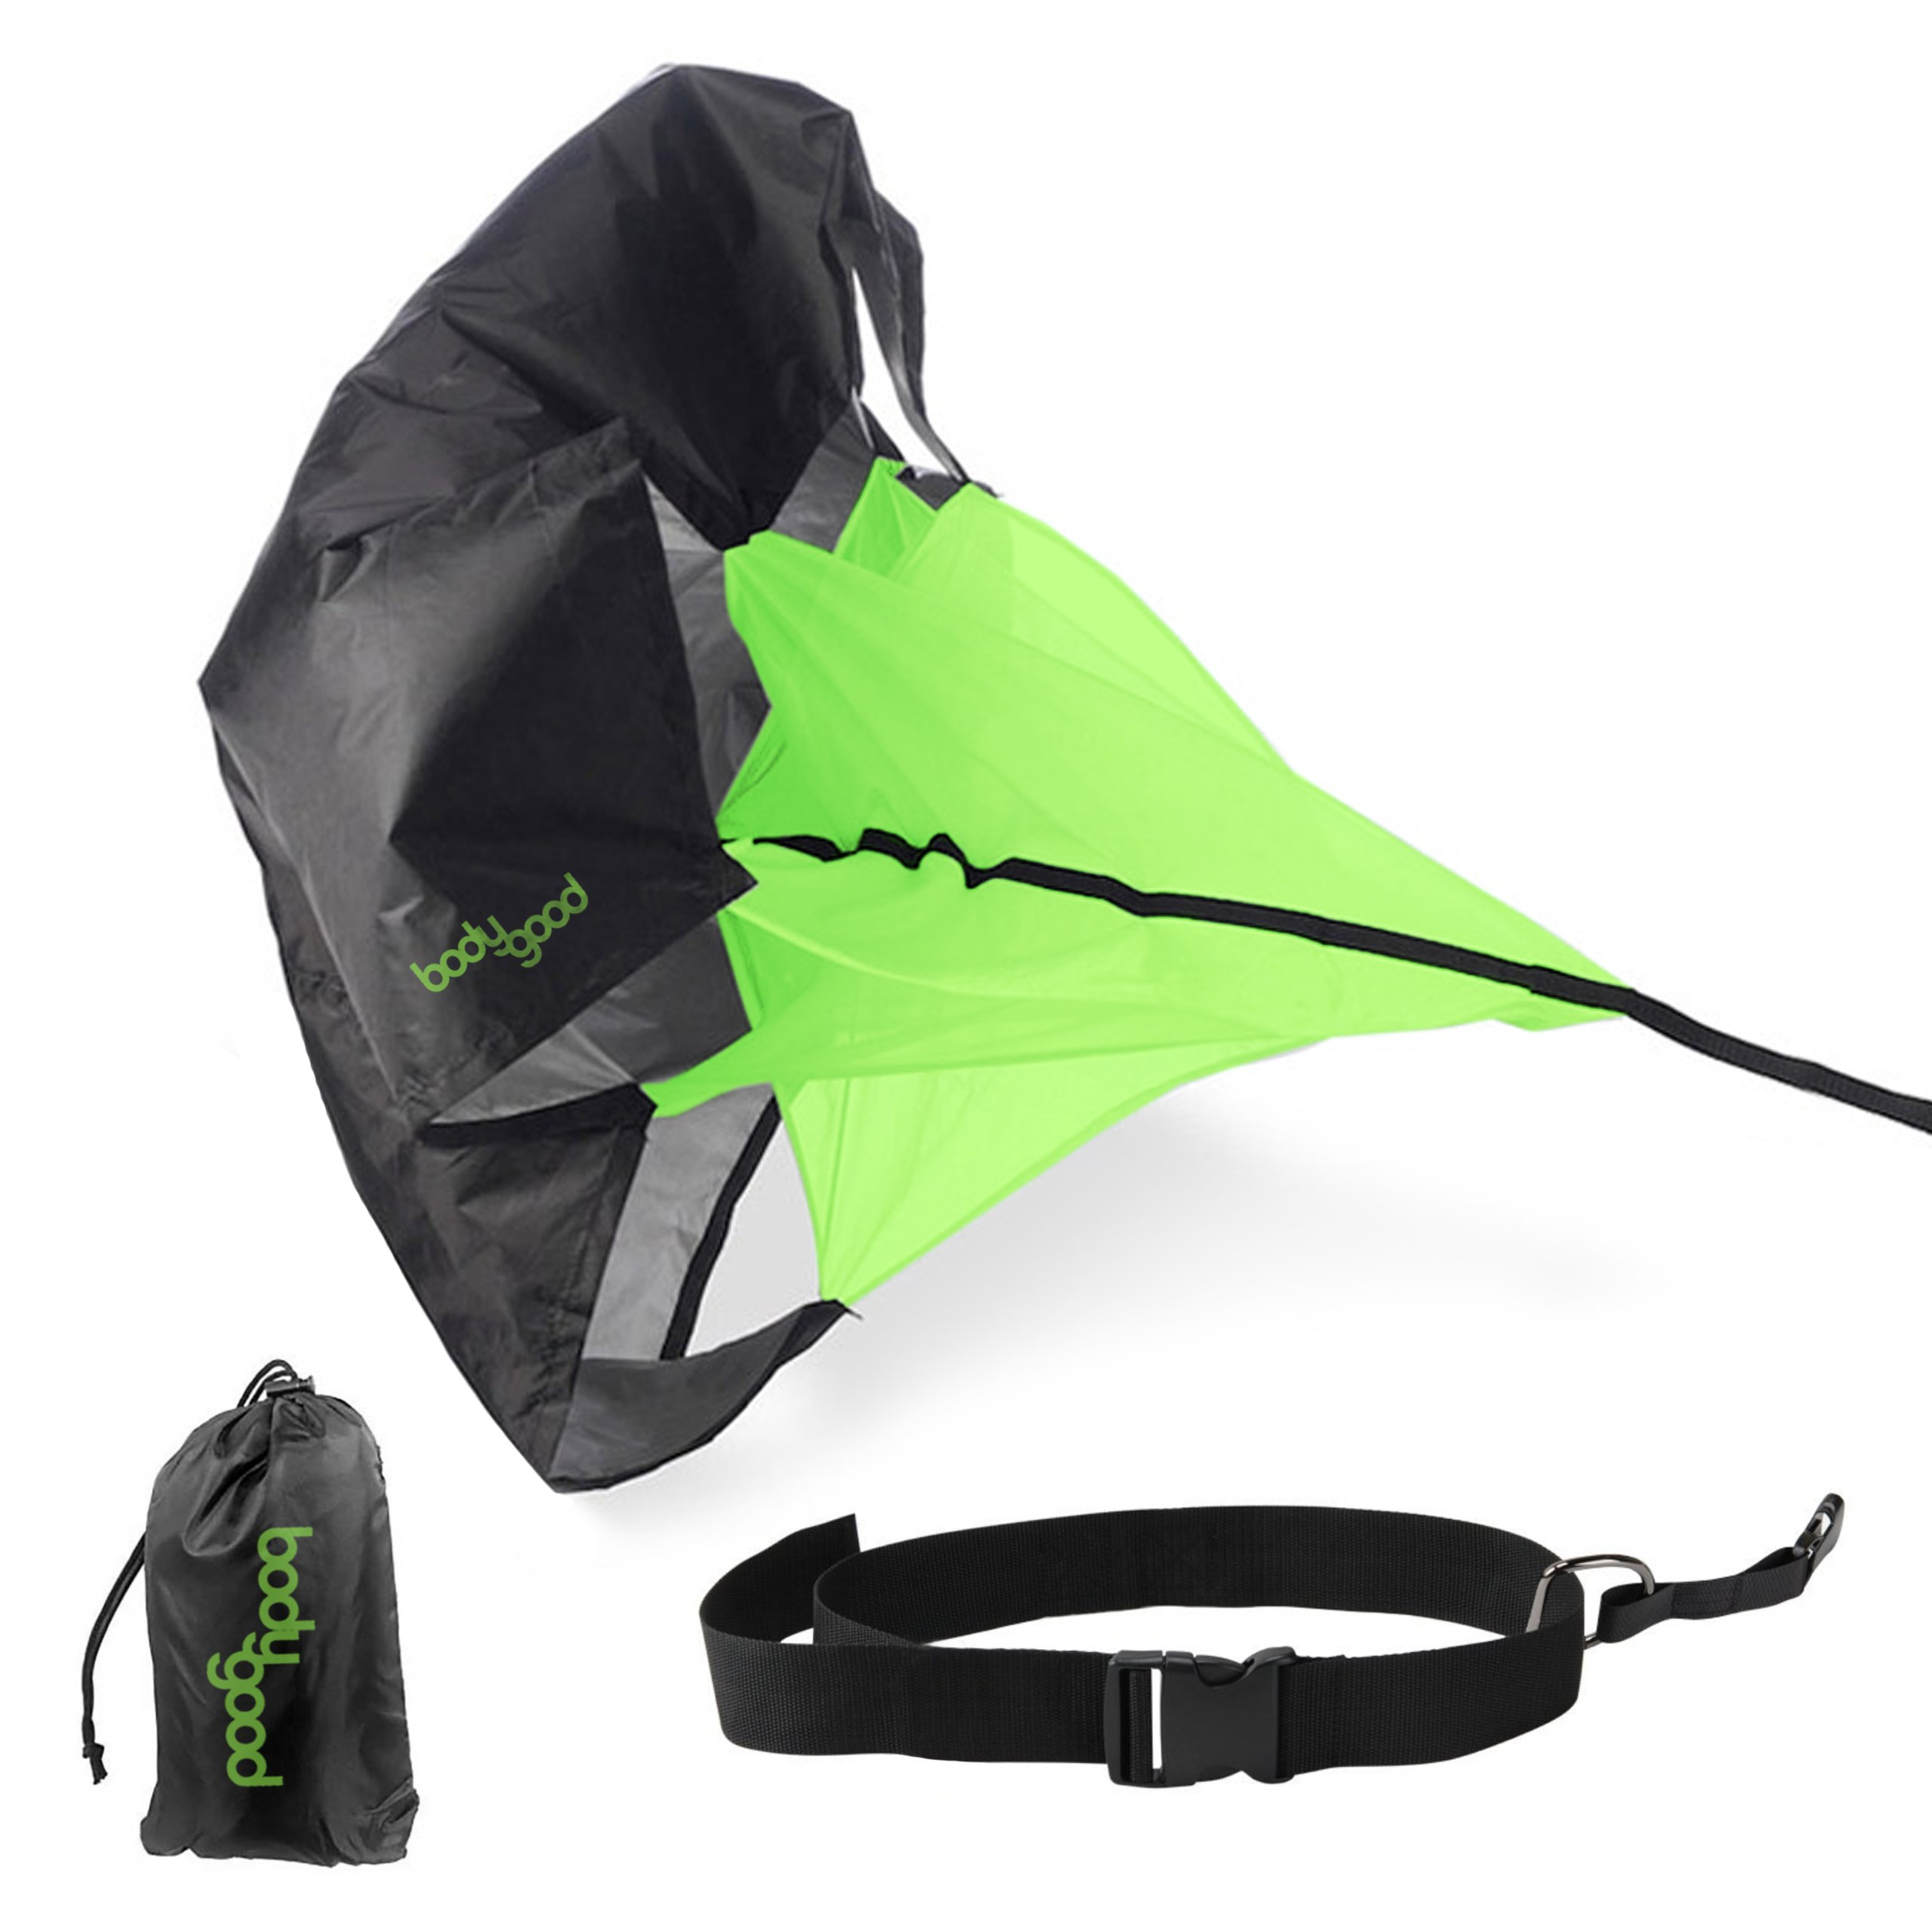 Running Parachute by BodyGood. Performance Training at its Best with Wind-Resistant 54 Inch Speed Chute – Achieve…